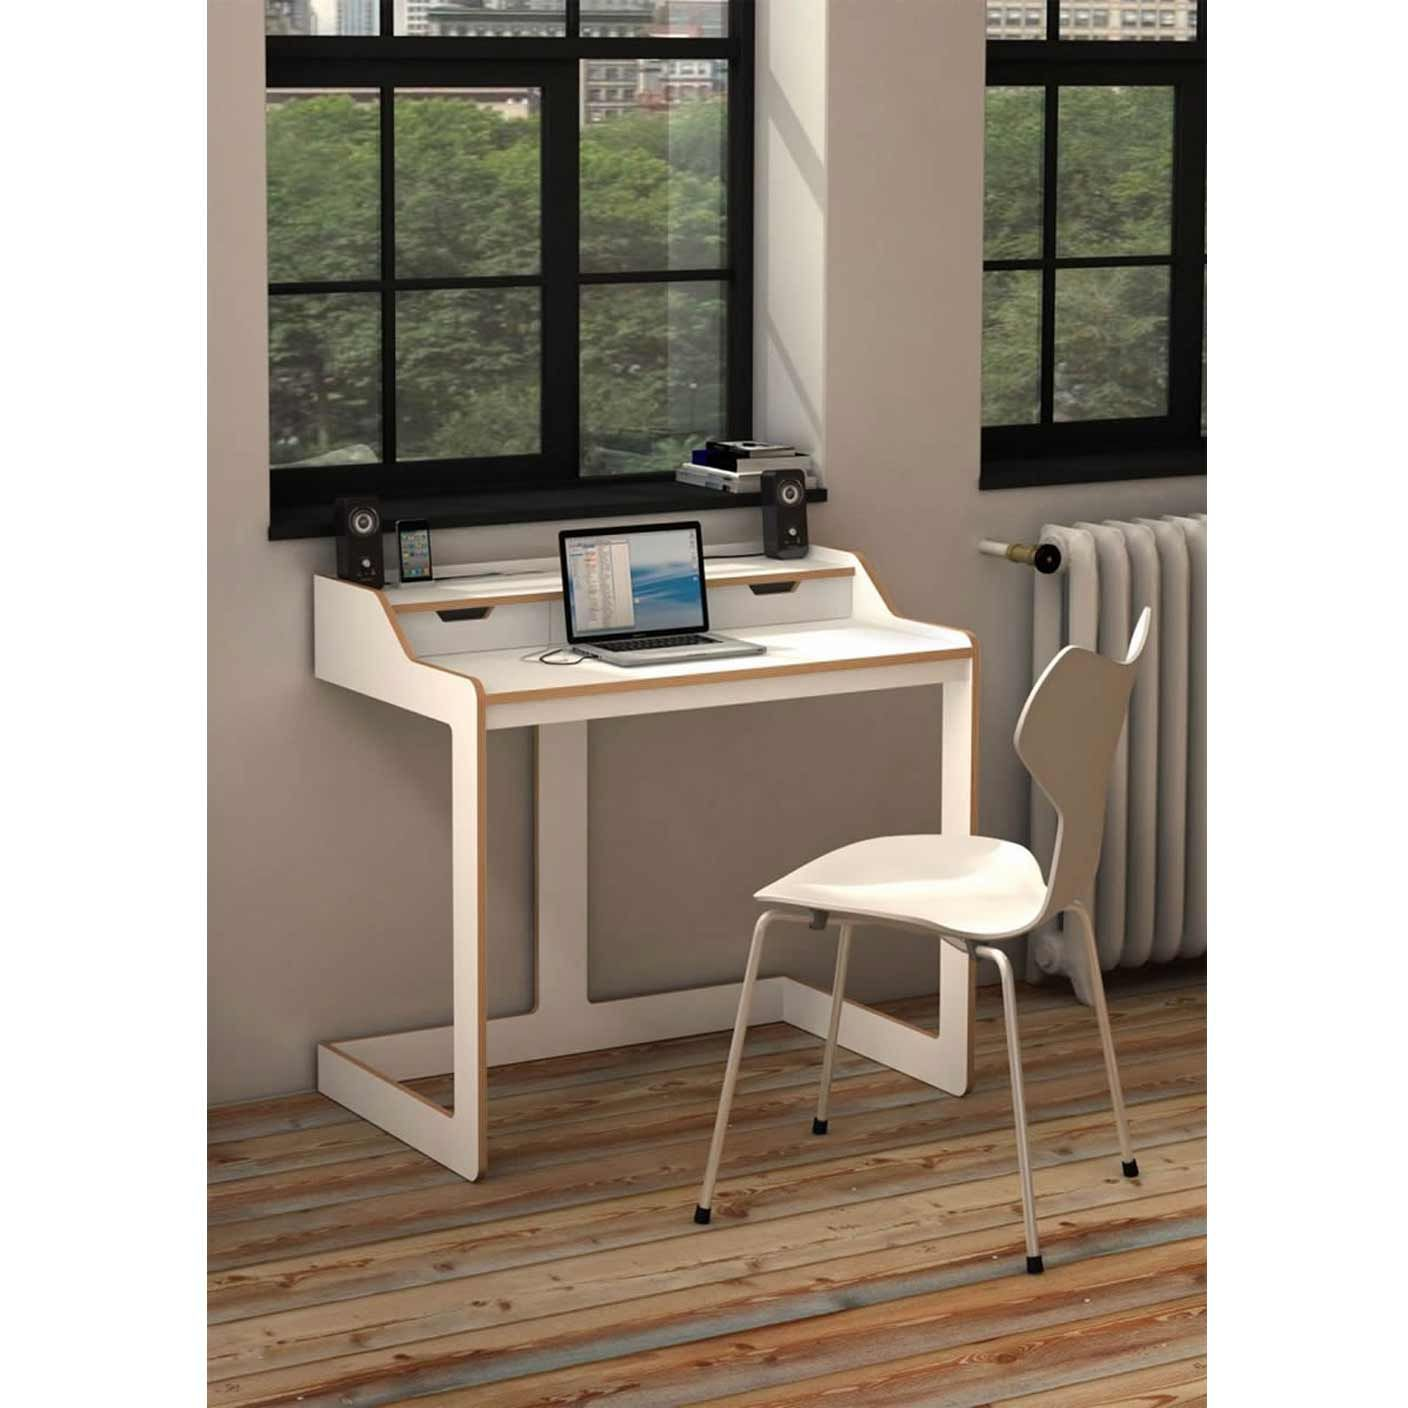 High Quality Desk Chair Design For Your Home Office Desks For